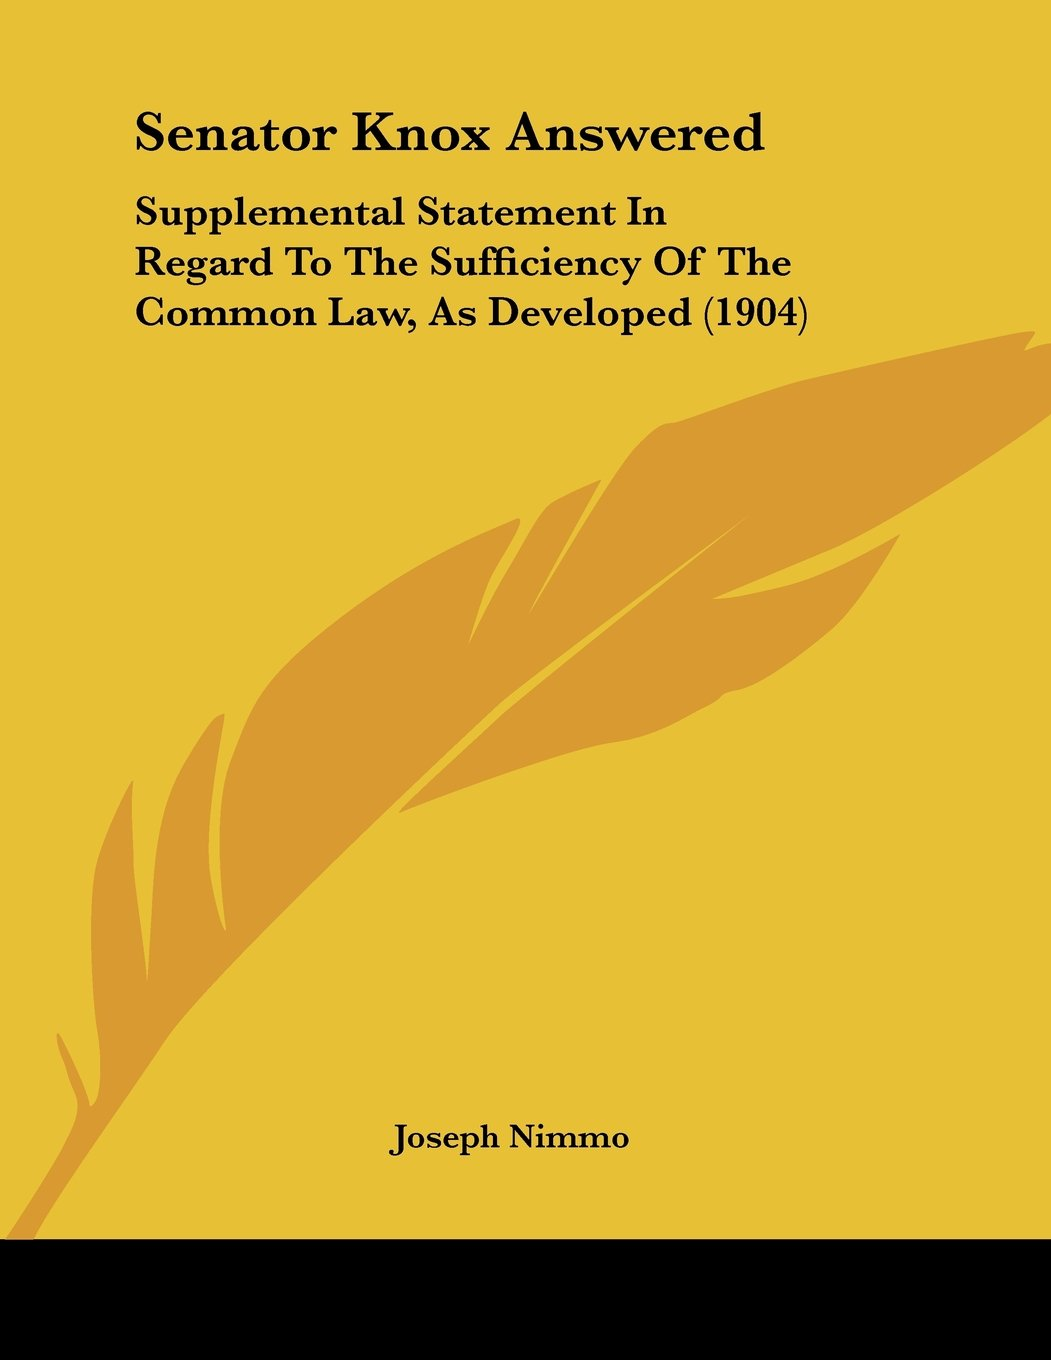 Senator Knox Answered: Supplemental Statement In Regard To The Sufficiency Of The Common Law, As Developed (1904) pdf